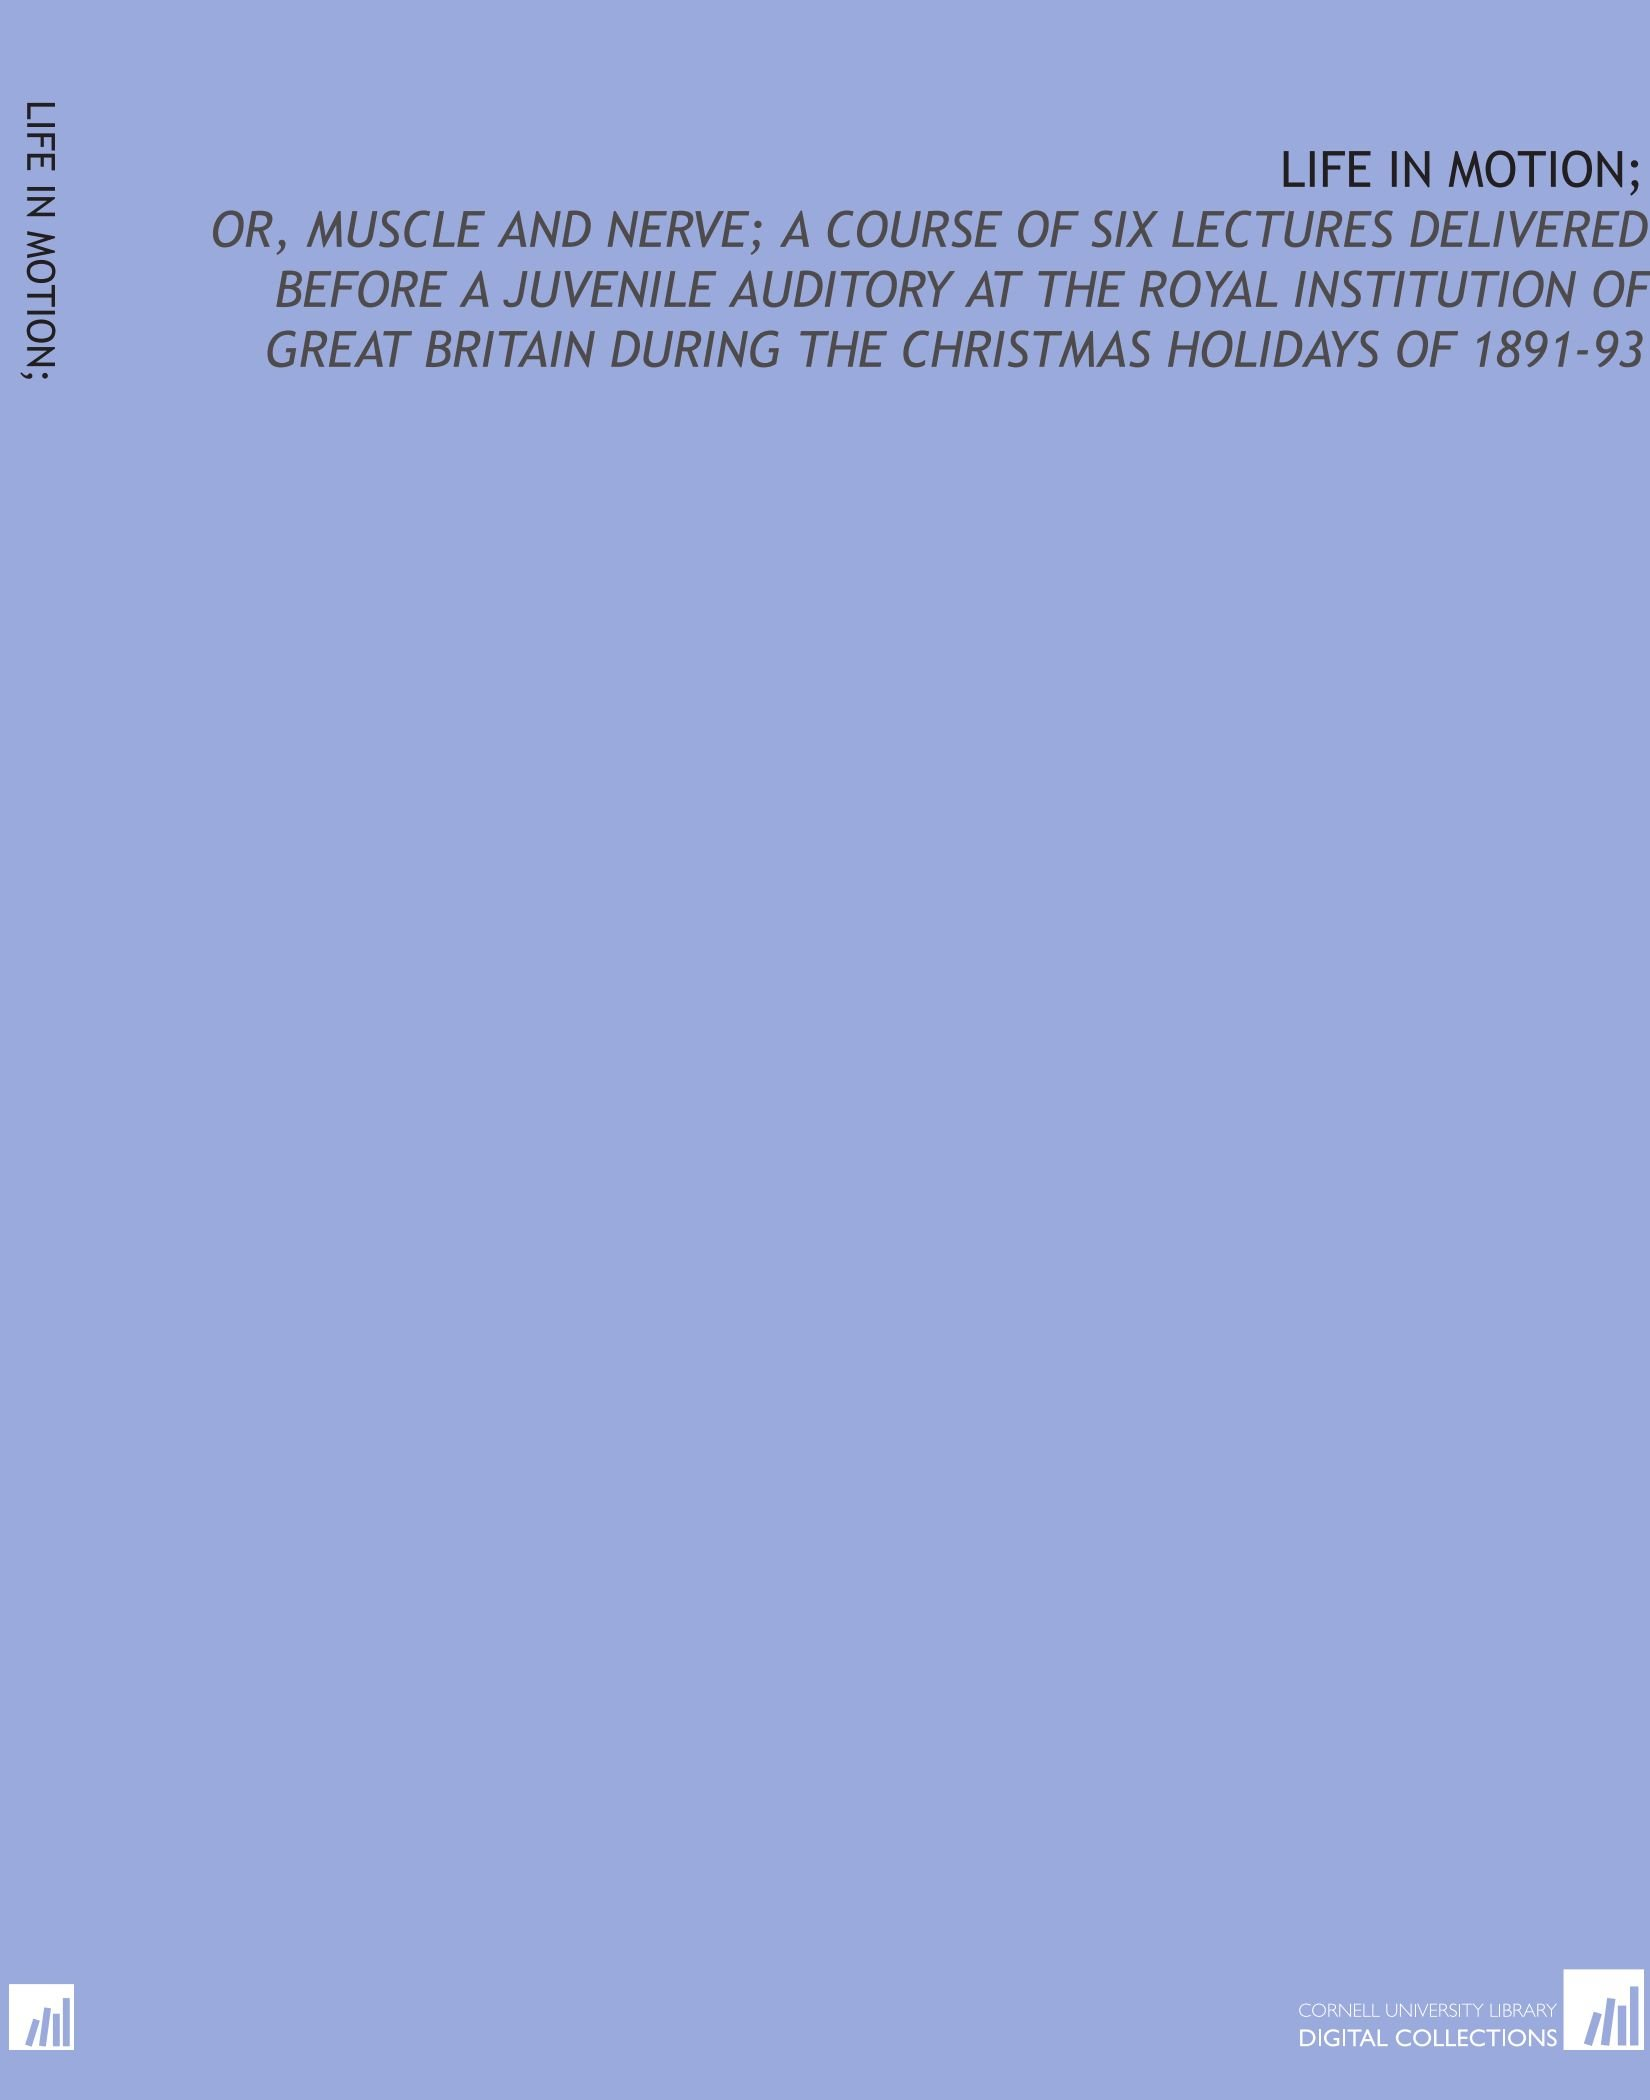 Download Life in motion;: or, Muscle and nerve; a course of six lectures delivered before a juvenile auditory at the Royal Institution of Great Britain during the Christmas holidays of 1891-93 pdf